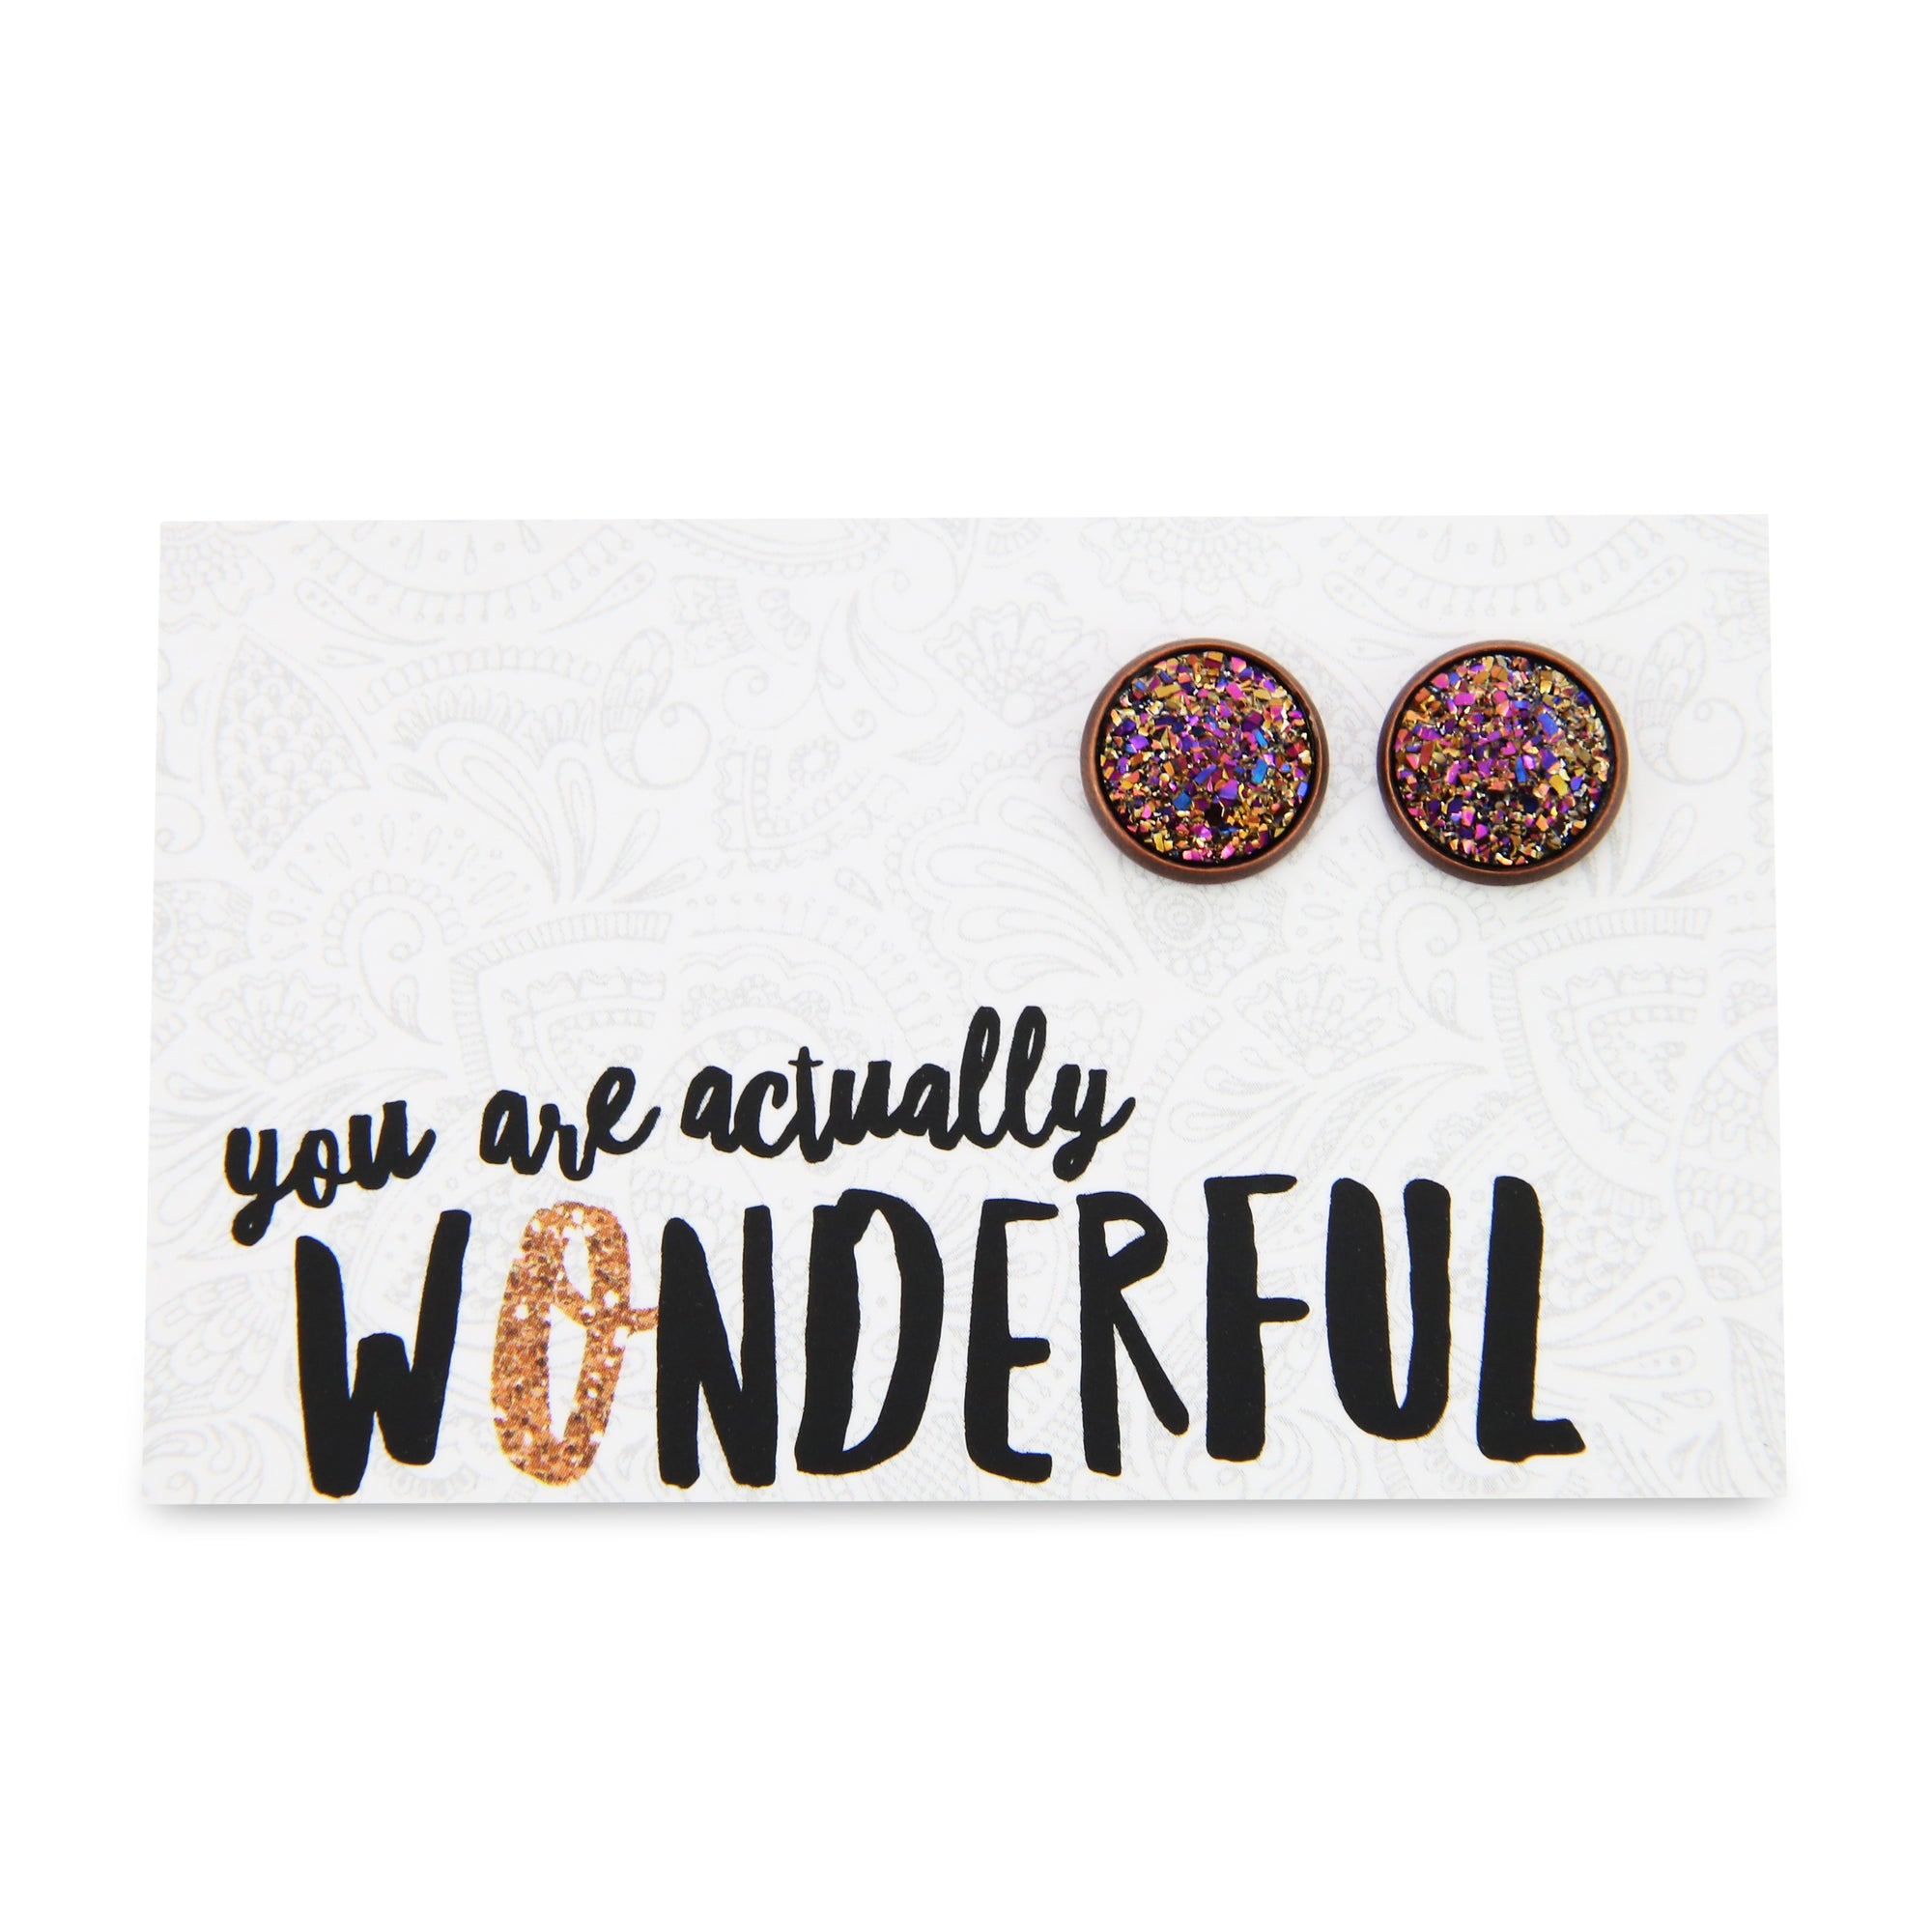 SPARKLEFEST - You Are Actually Wonderful - Metallic Druzy Earrings set in Copper - Gloss (9110)